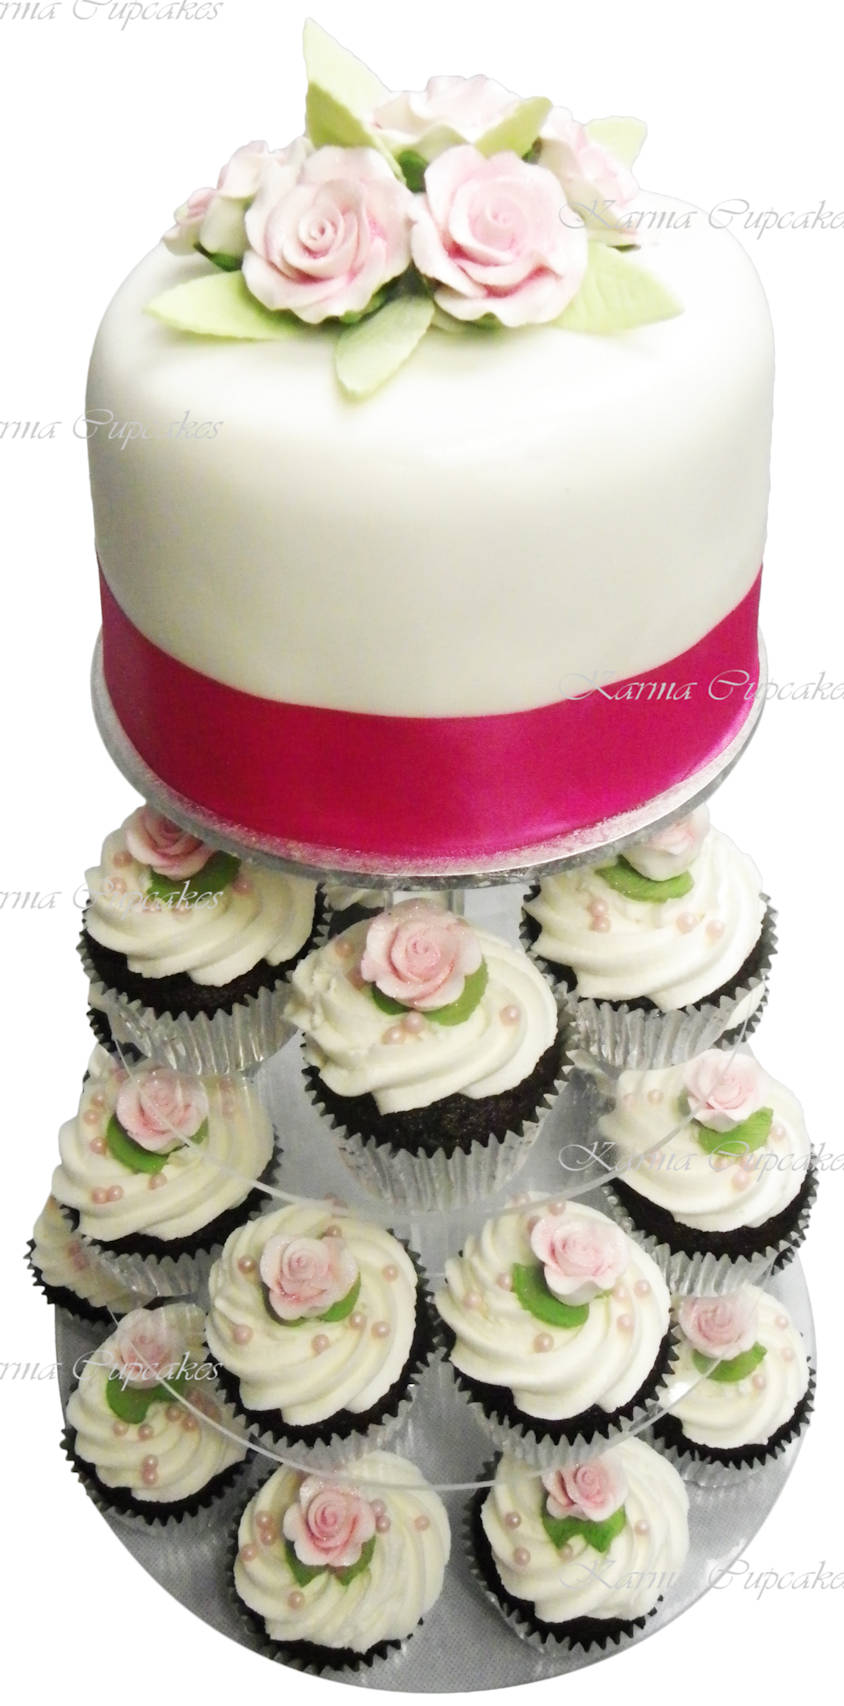 wedding cake with small roses and cupcakes. karma cupcakes copy